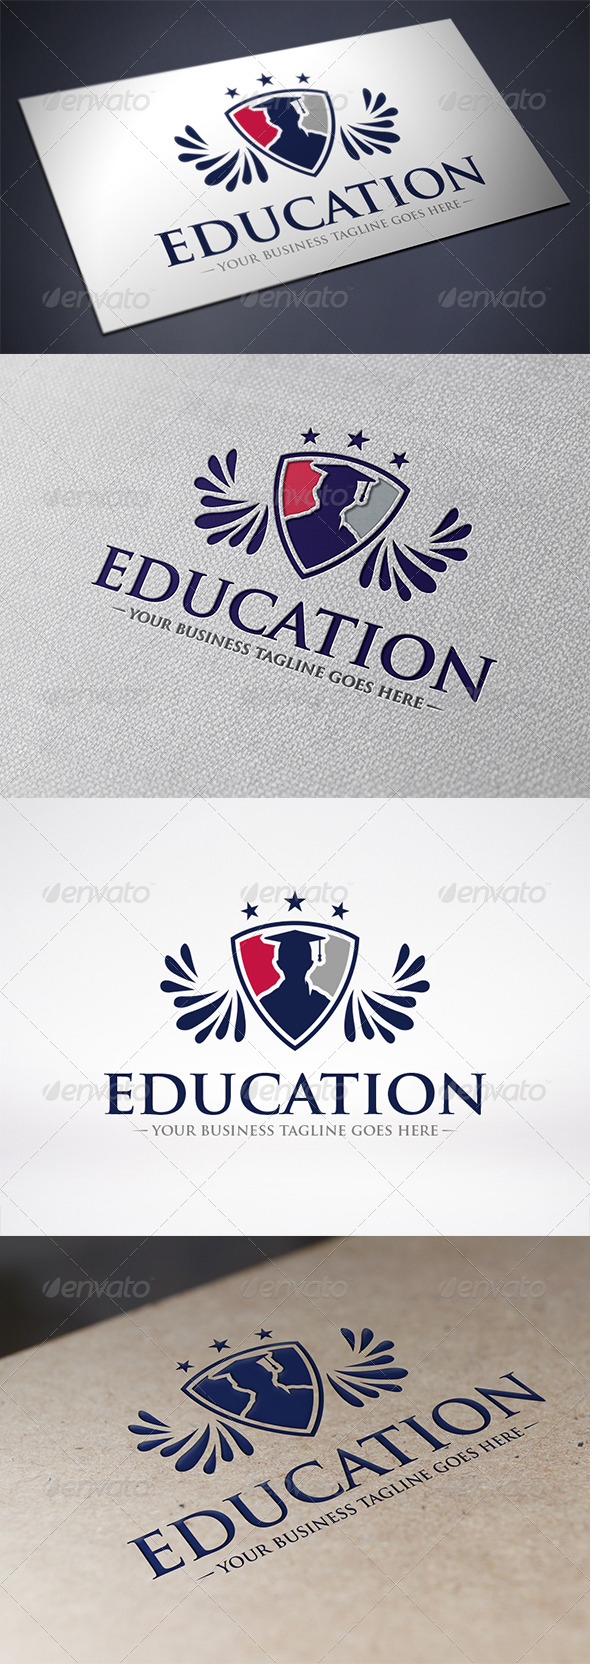 GraphicRiver Education Logo Template 6329333